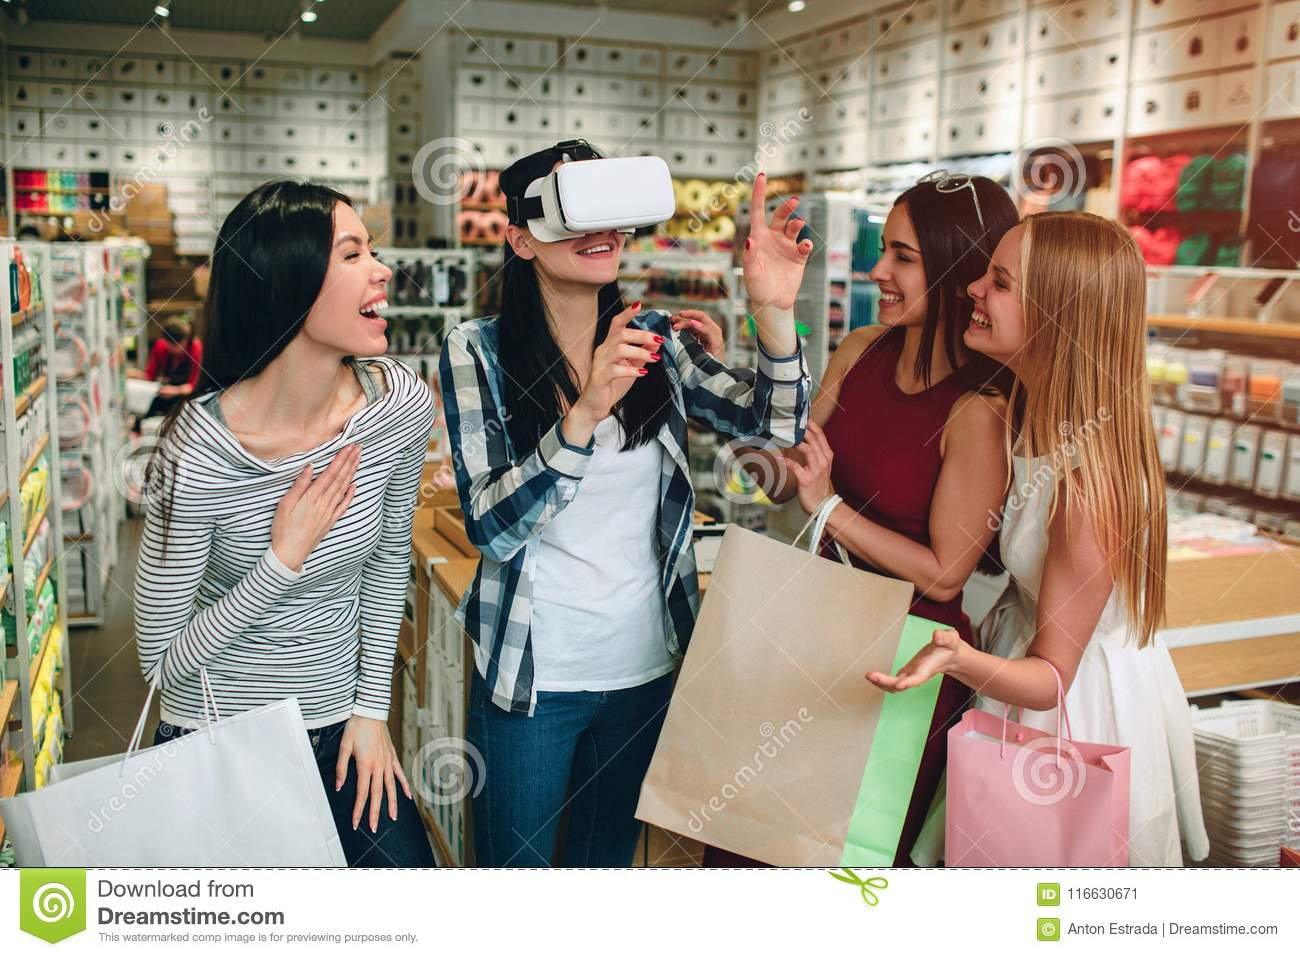 Four girls are having some fun. Brunette in shirt has VR glasses on her face and keeping her hands in the air while her